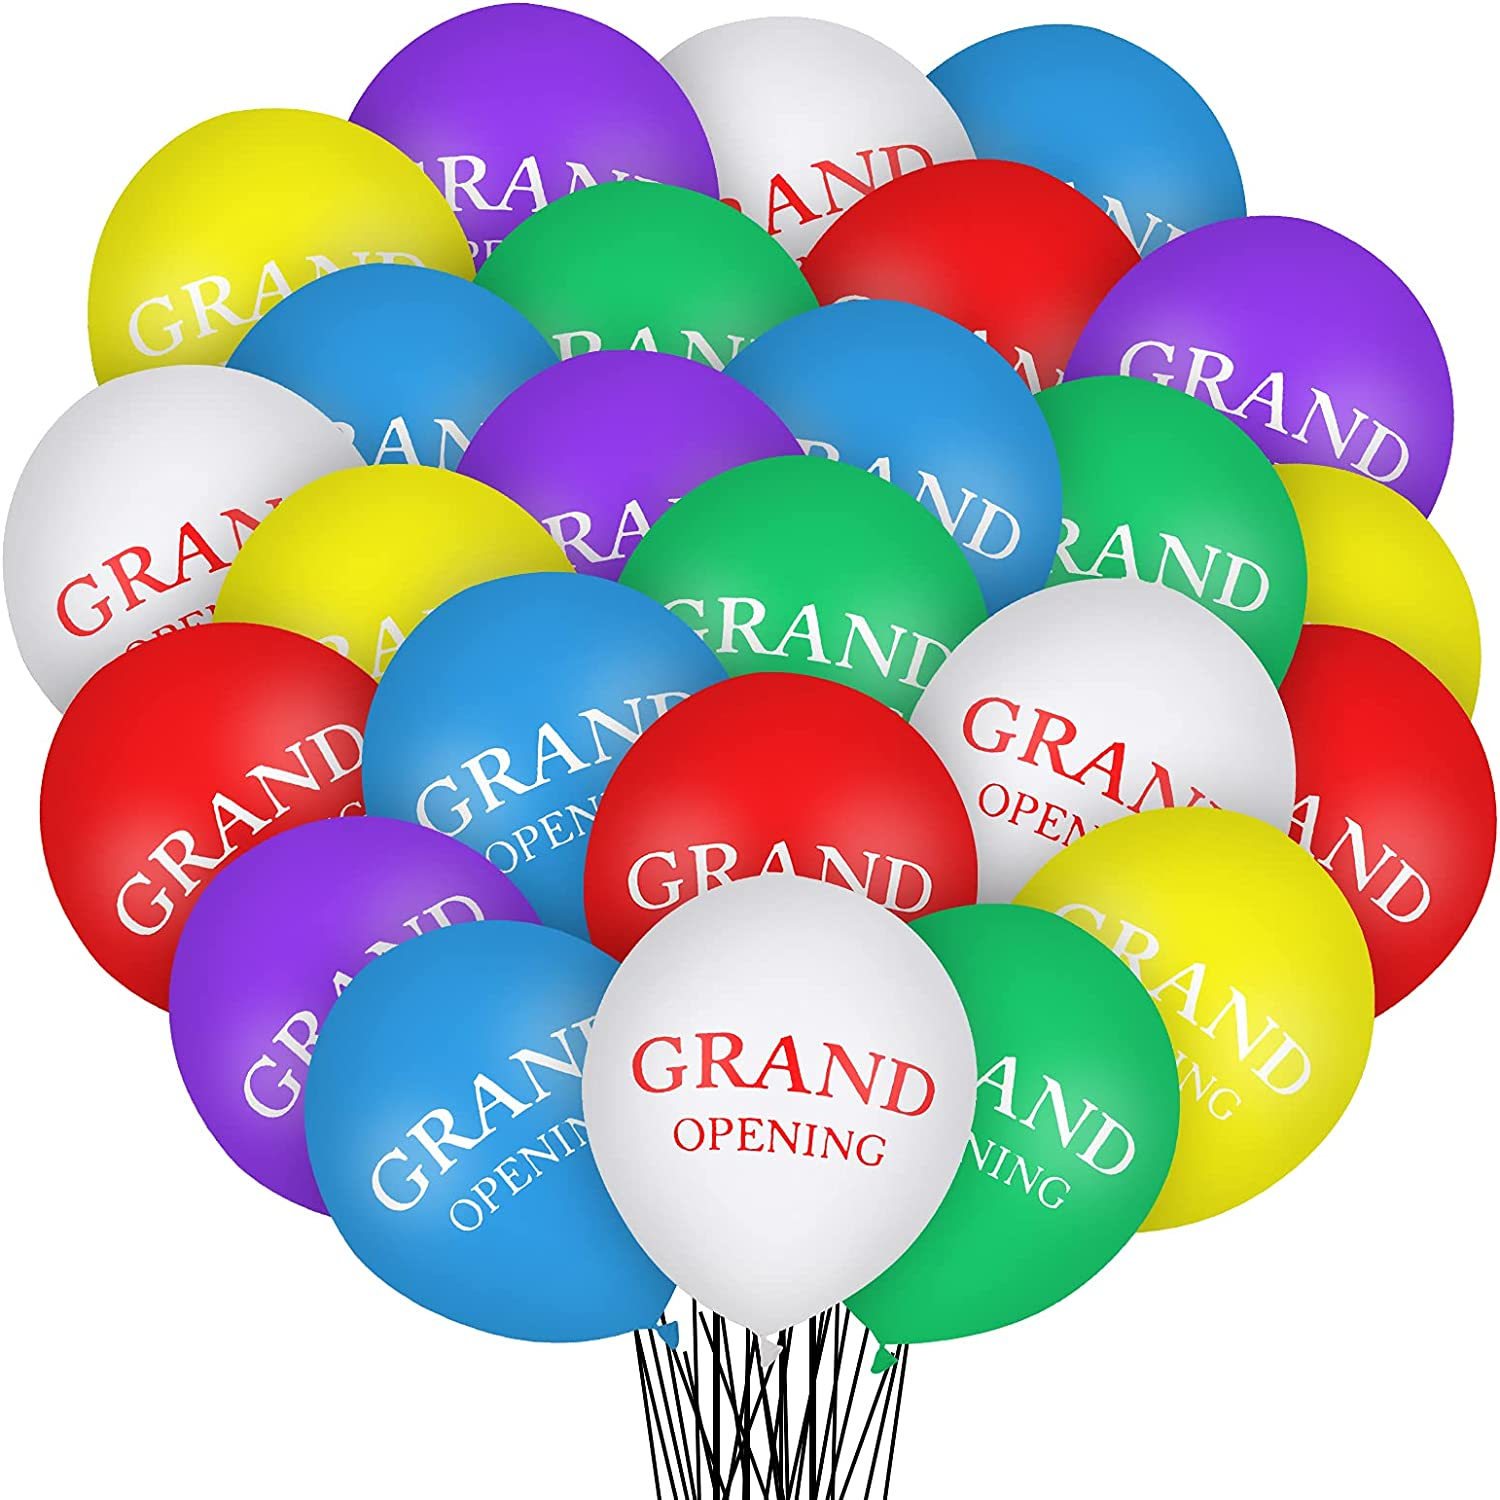 30 Pcs Grand Opening Balloons Colorful Celebrate Business Balloons 12 Inches Latex Balloons for Opening Ceremony Decoration